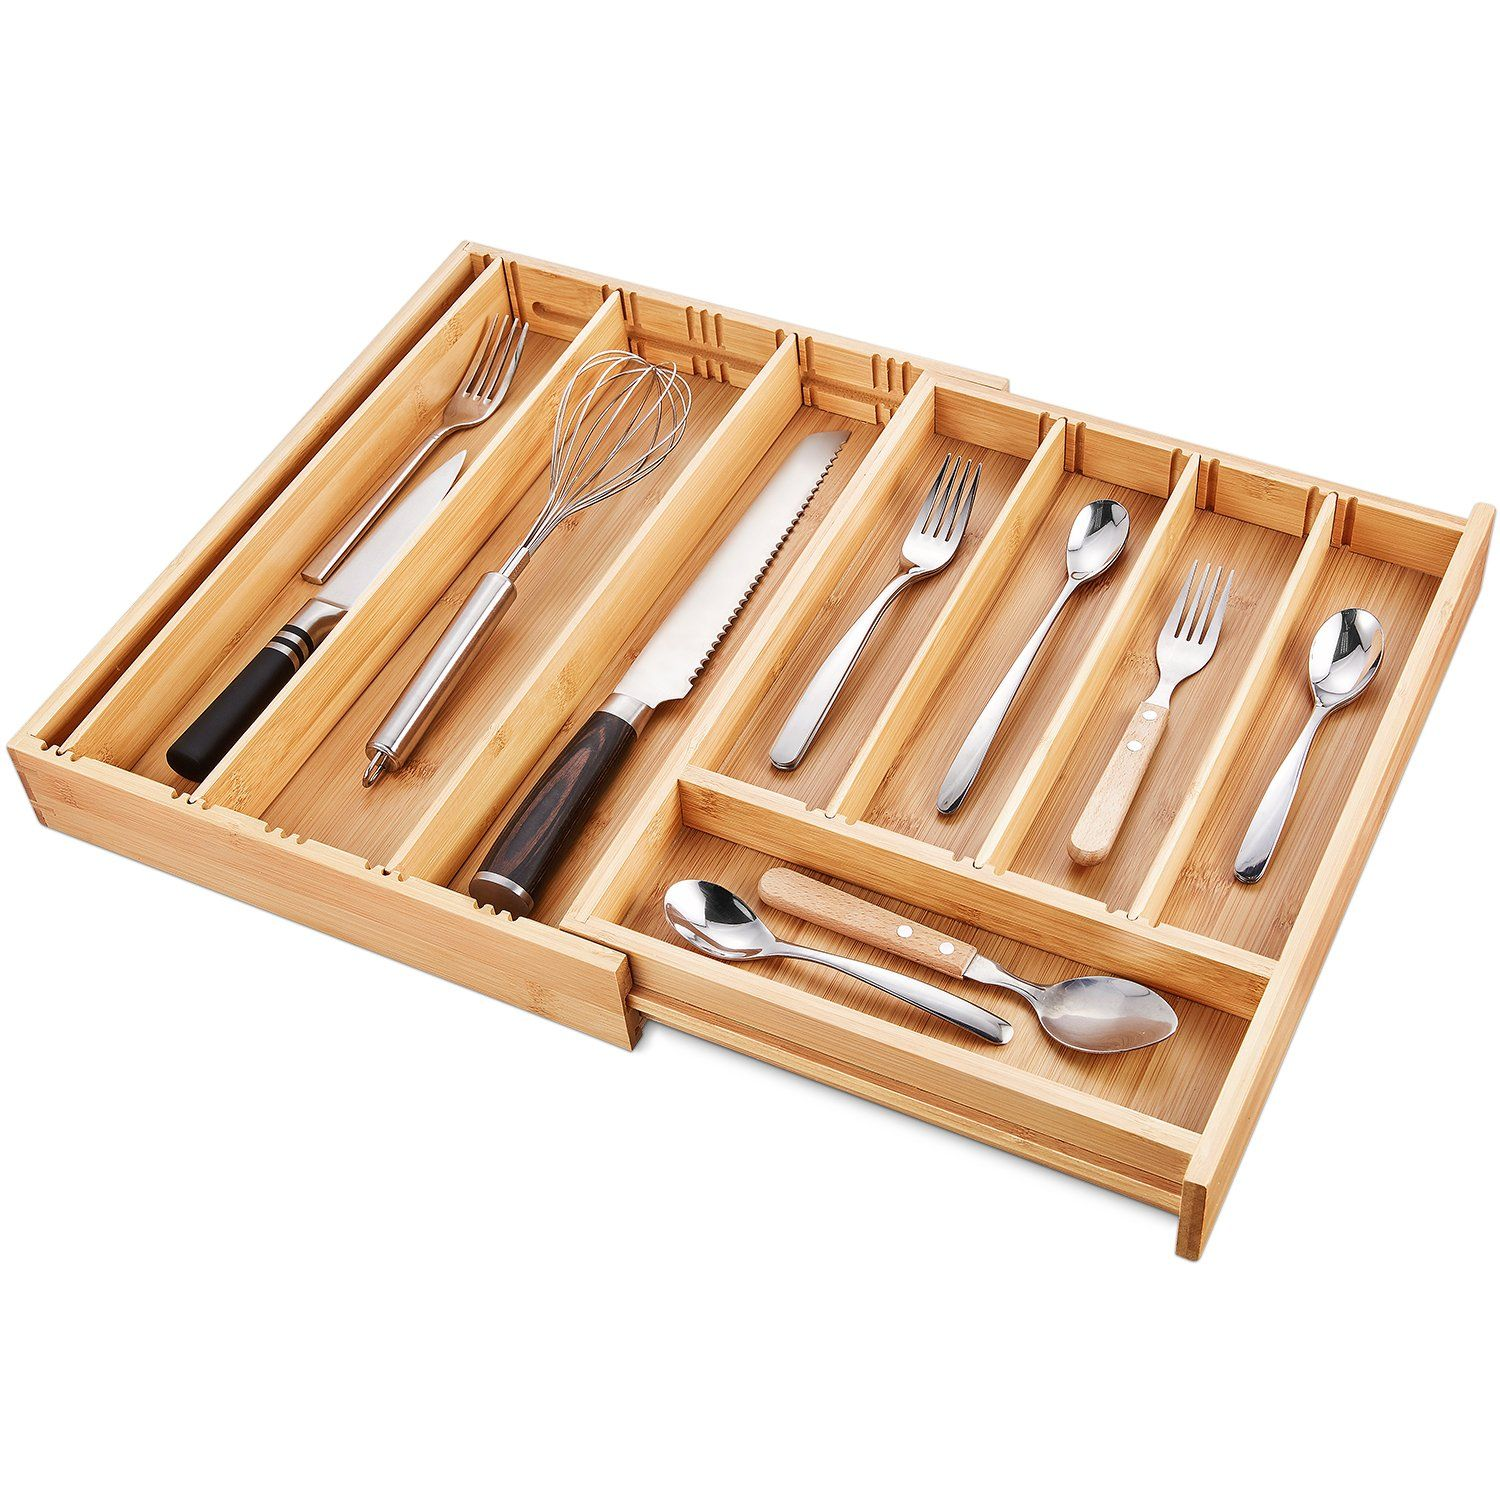 Deik Bamboo Drawer Organizer Expandable Cutlery Tray And Utensil